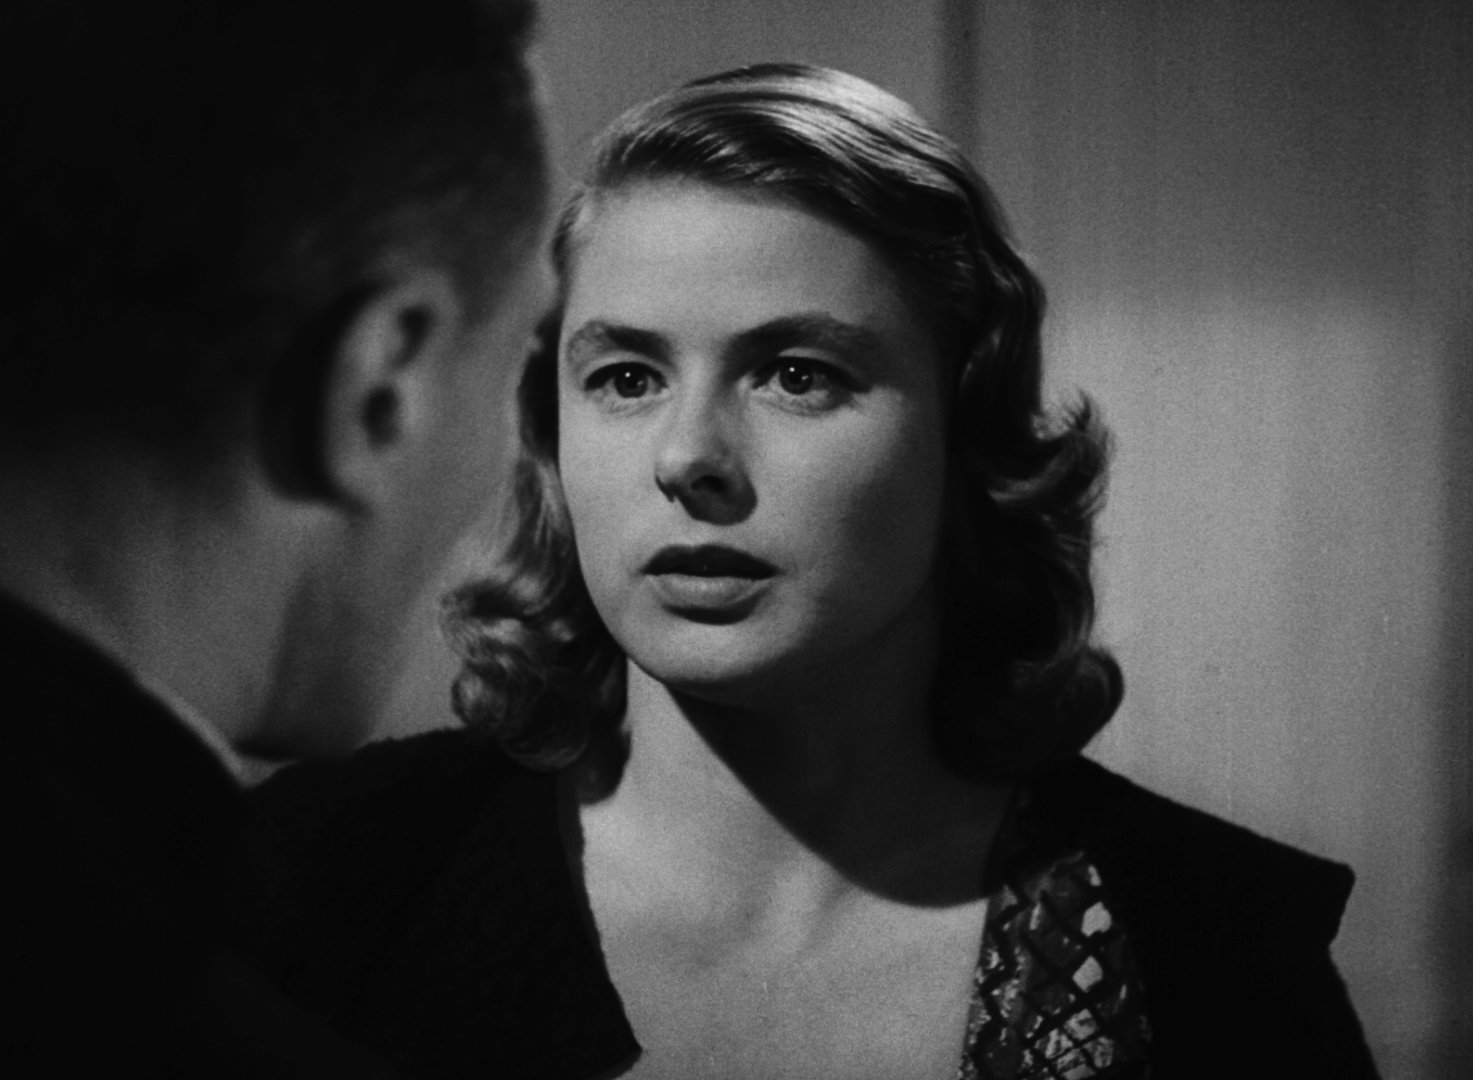 3 Films By Roberto Rossellini Starring Ingrid Bergman (Stromboli/Europe '51/Journey to Italy)(The Criterion Collection)